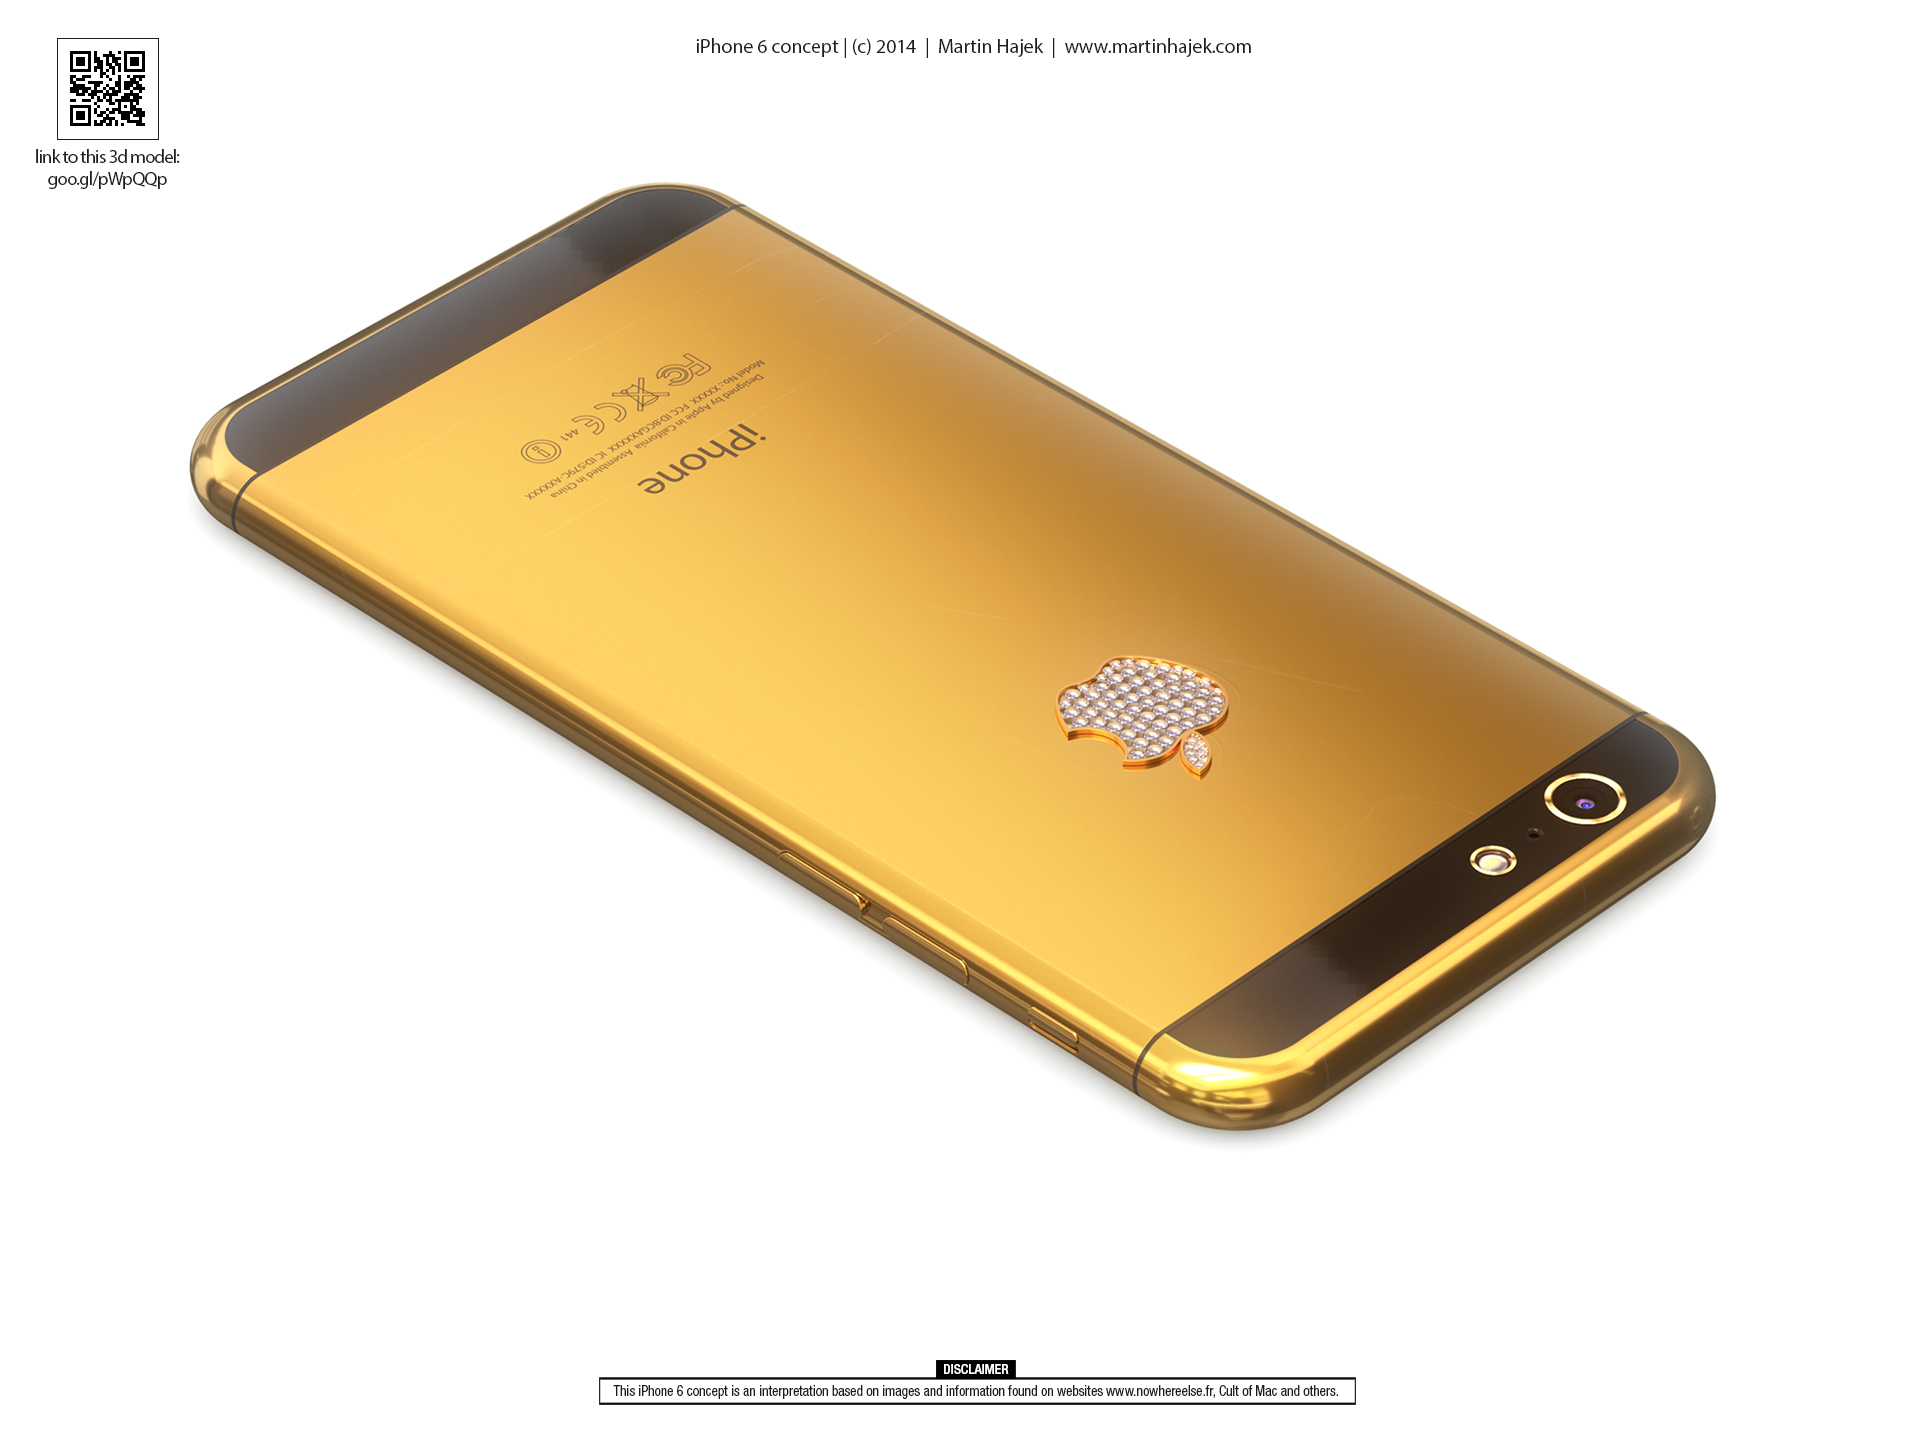 Luxury-iPhone-6-concept-design (1)